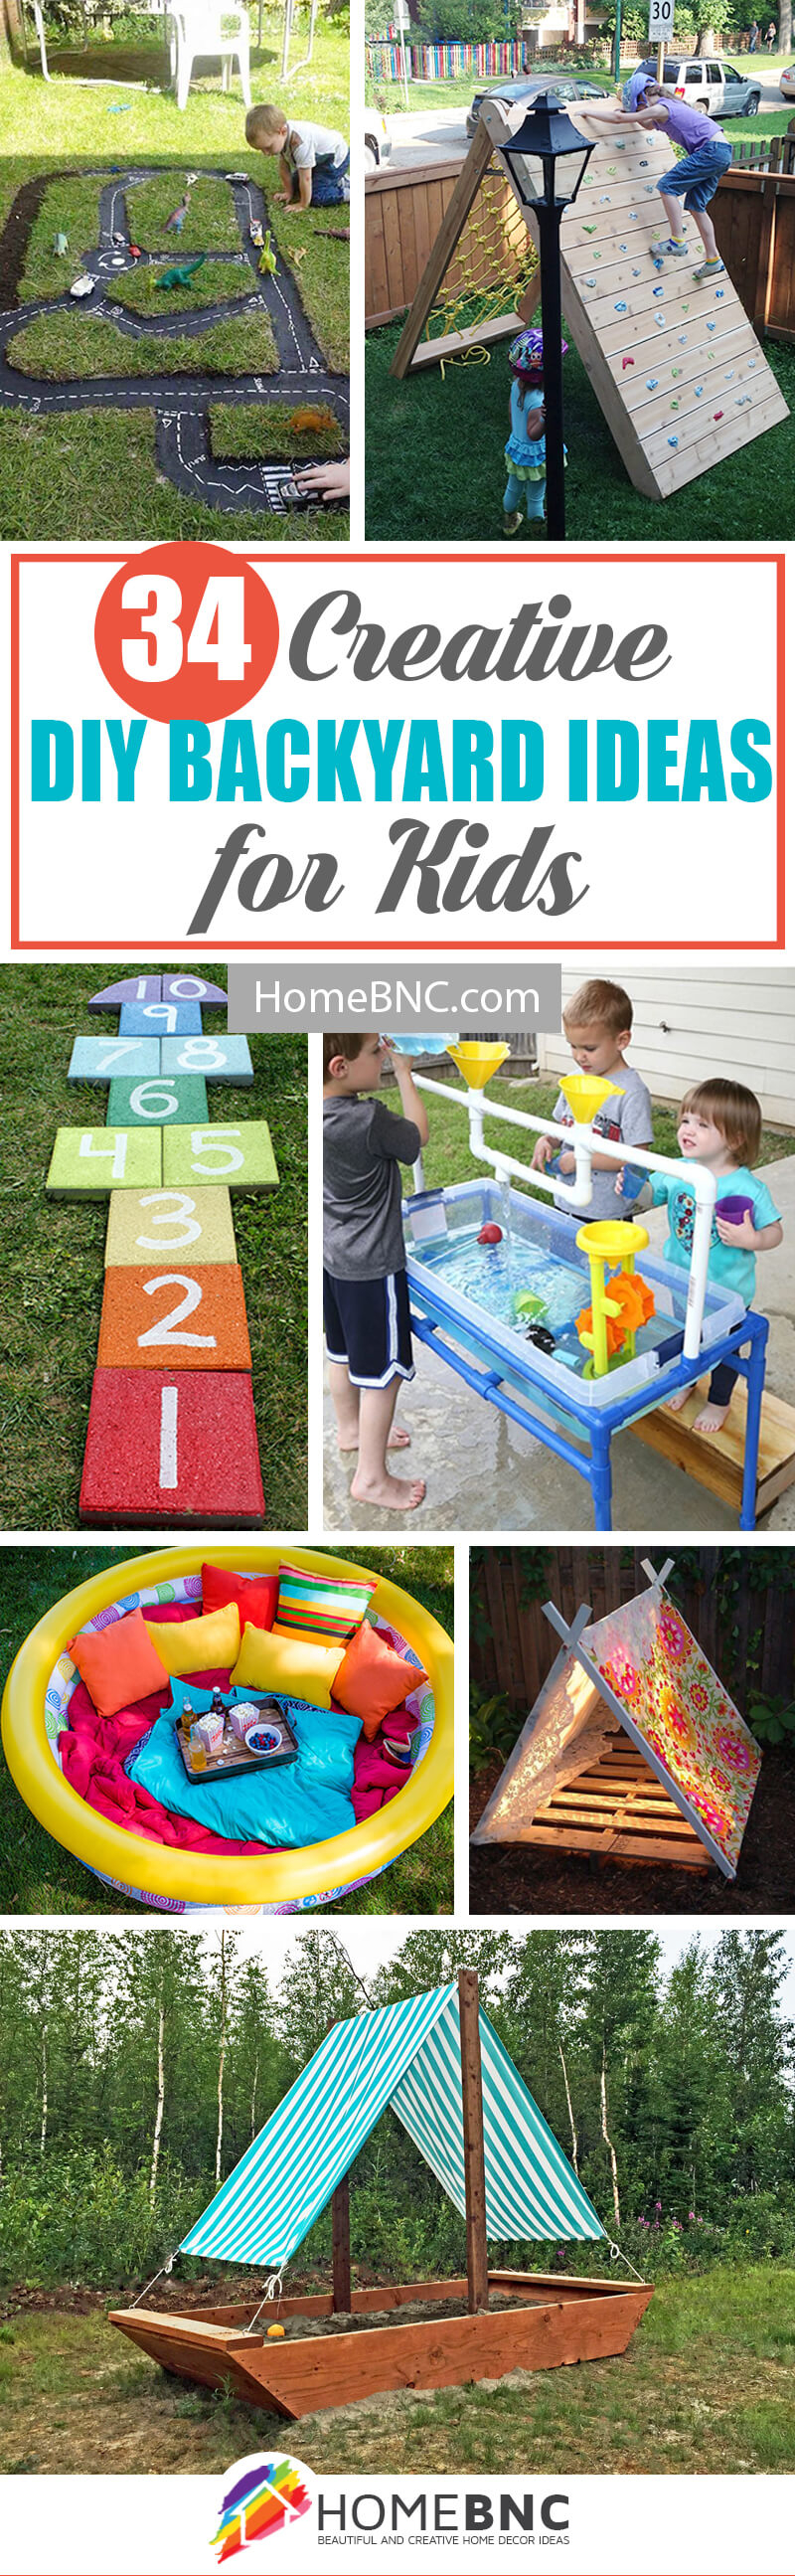 34 Best Diy Backyard Ideas And Designs For Kids In 2019 in 12 Some of the Coolest Initiatives of How to Upgrade Backyard Kid Ideas